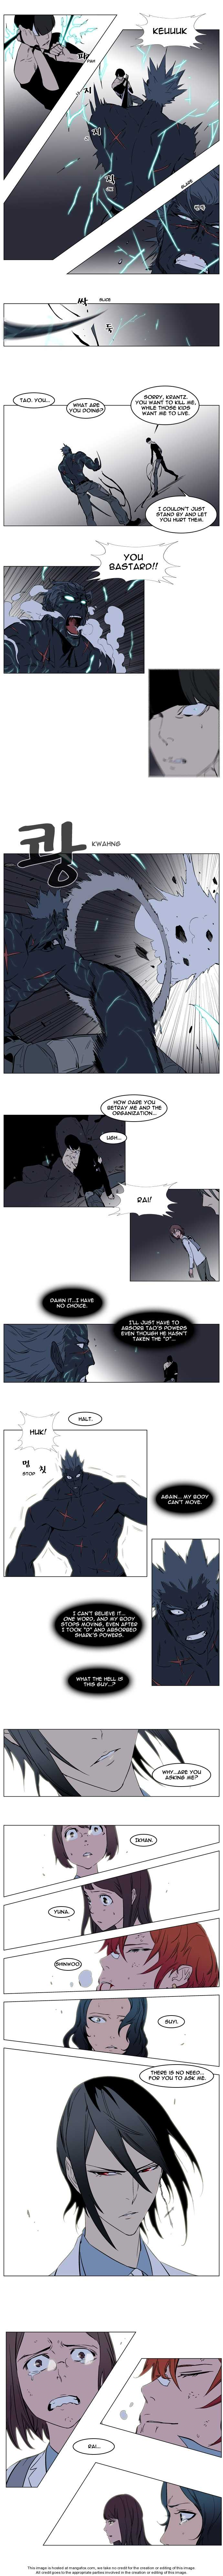 Noblesse 136 Page 3